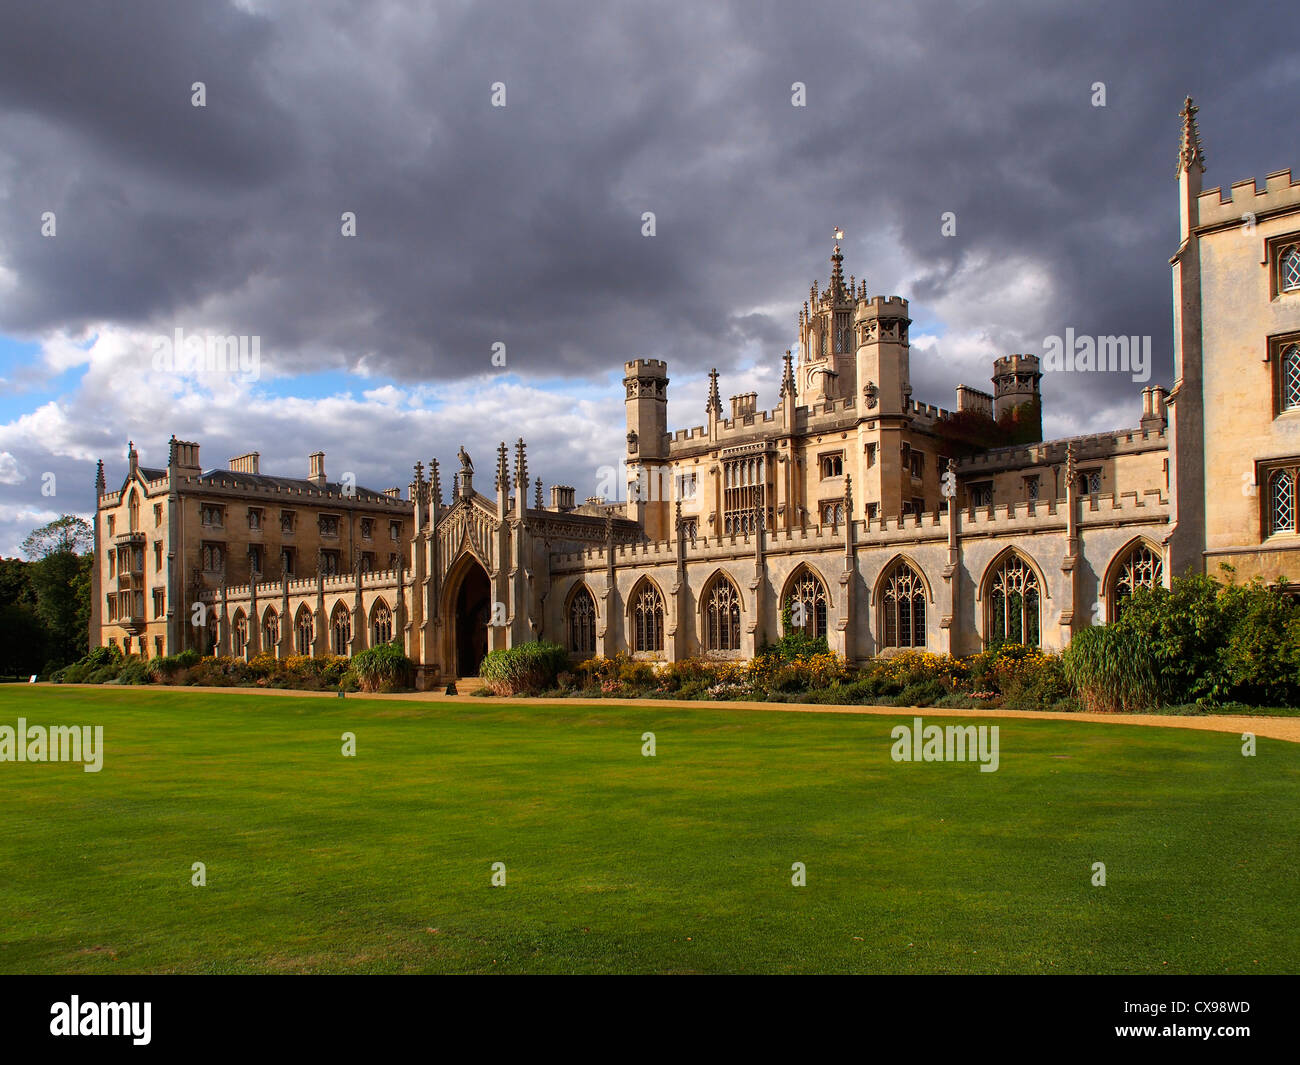 St Johns College, Cambridge, where the Bridge of Sighs crosses the river. Moody skies and saturated colors. - Stock Image